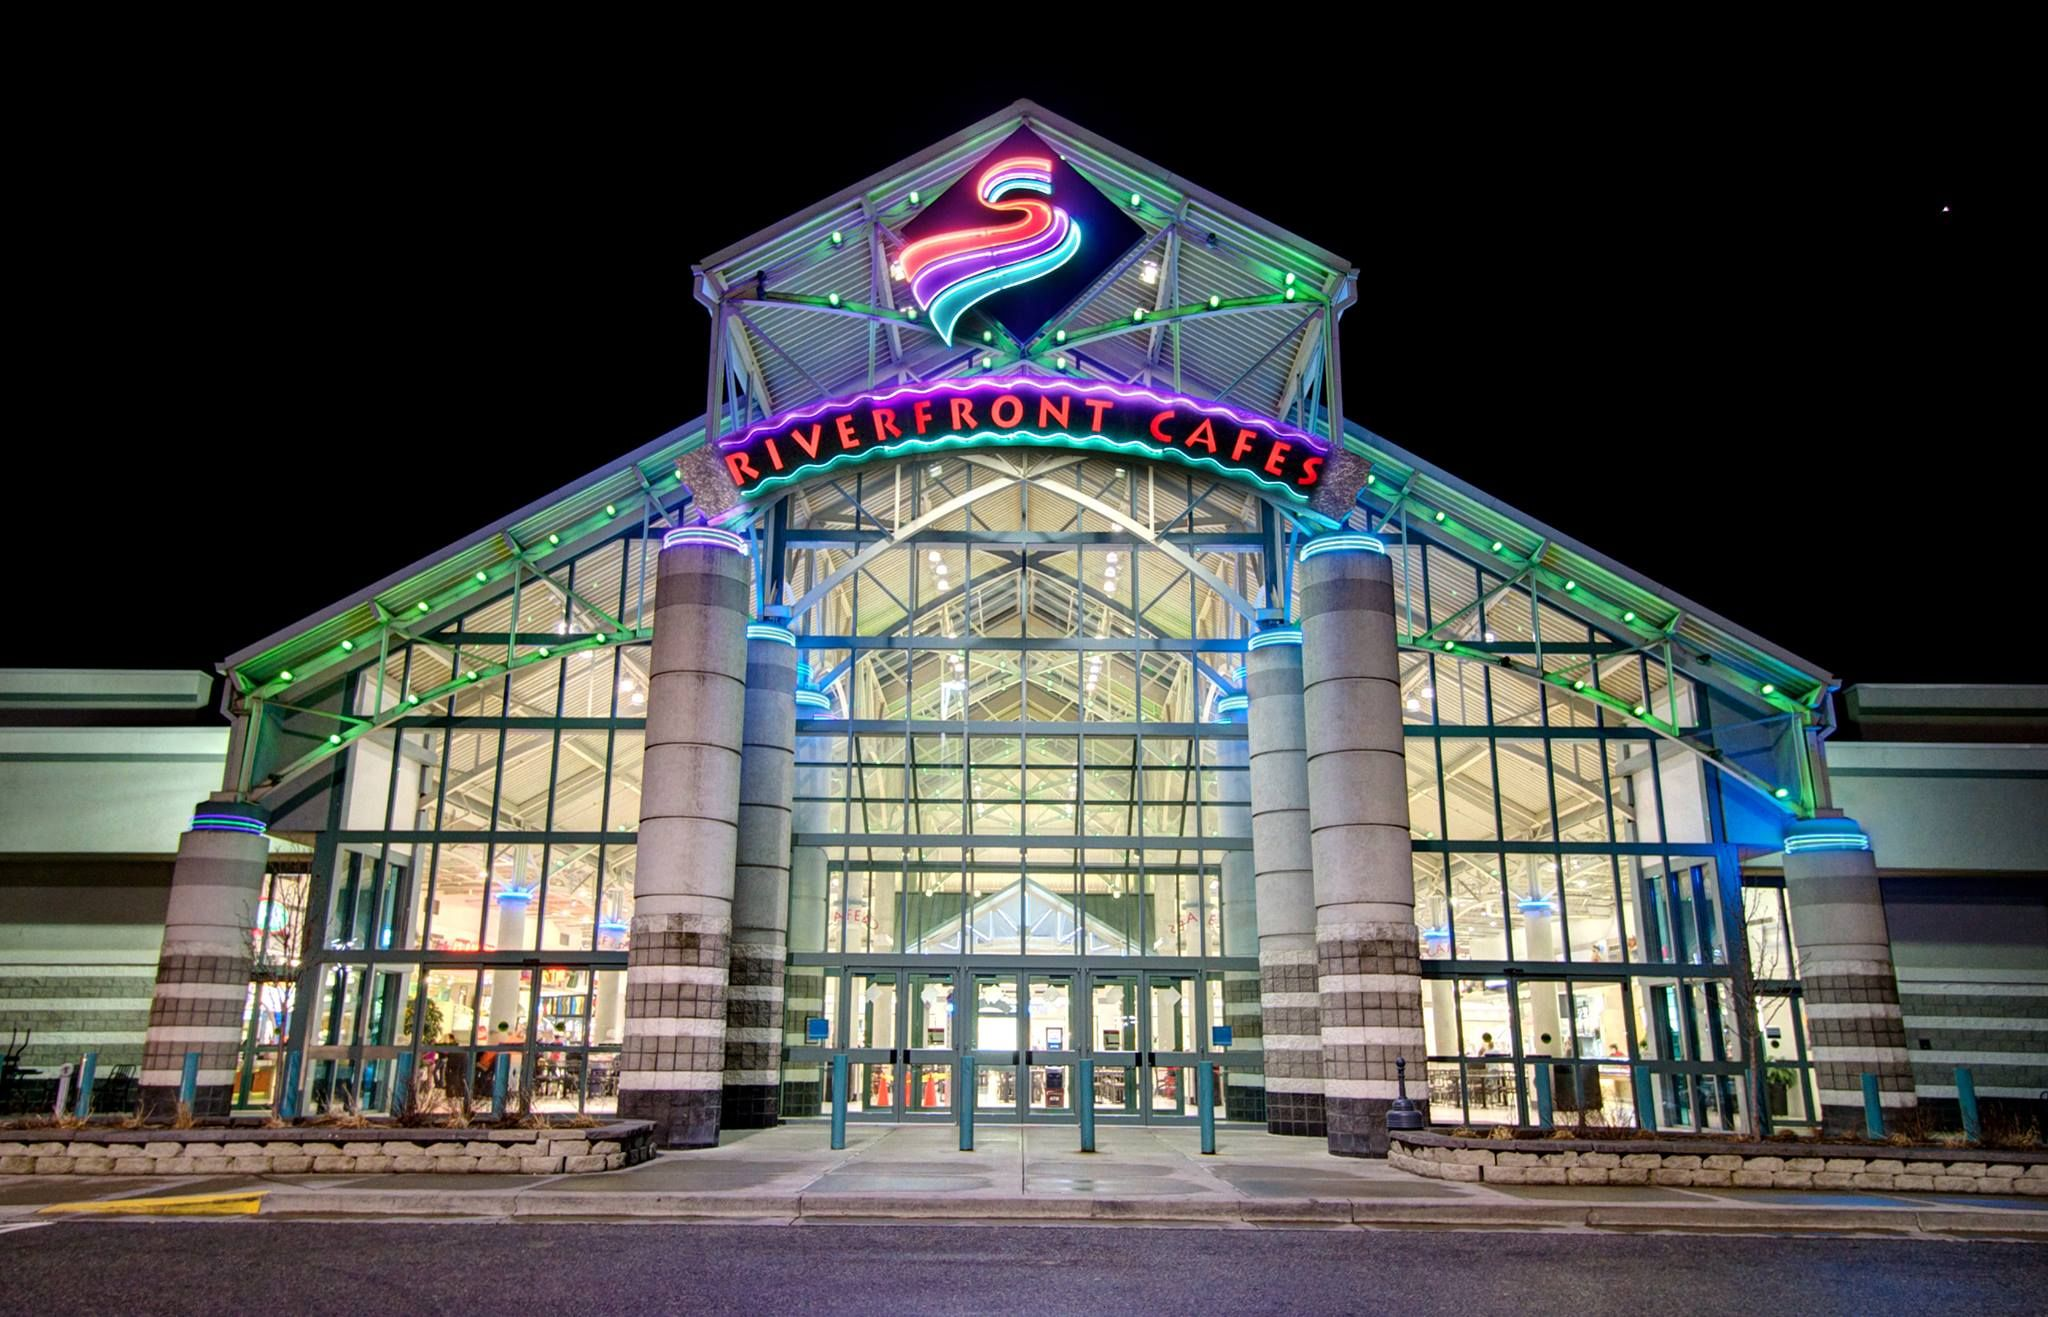 Spokane Valley Mall Is 30 Mins Away From Cheney This Mall Has Forever 21 Macys American Eagle H Nordstrom Rack Tj Maxx A Spokane Valley Spokane Landmarks